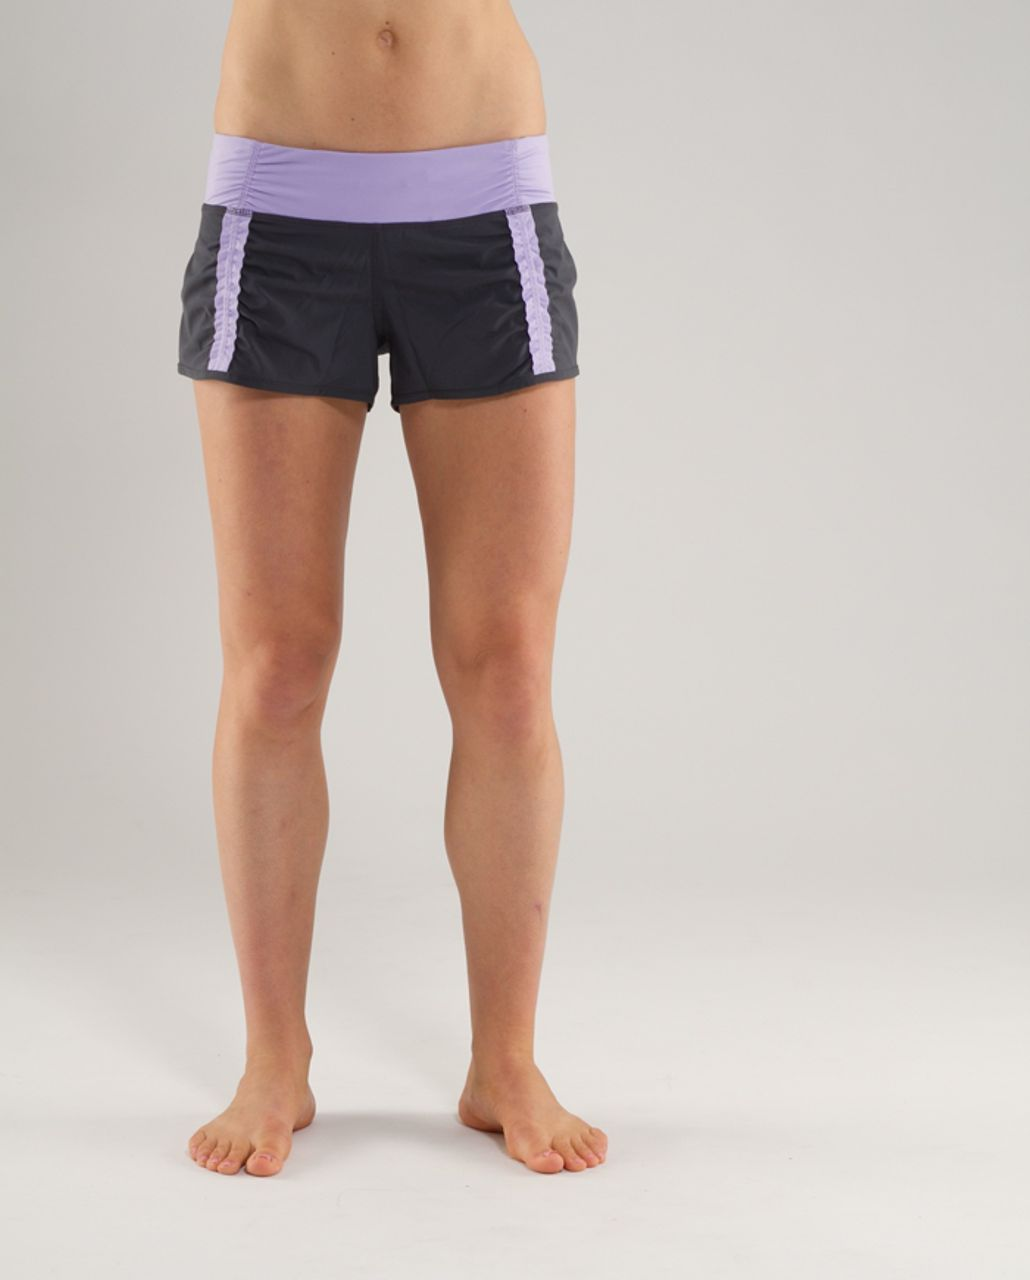 Lululemon Run:  Your Heart Out Short - Coal /  Lilac Heathered Coal Wee Stripe /  Lilac